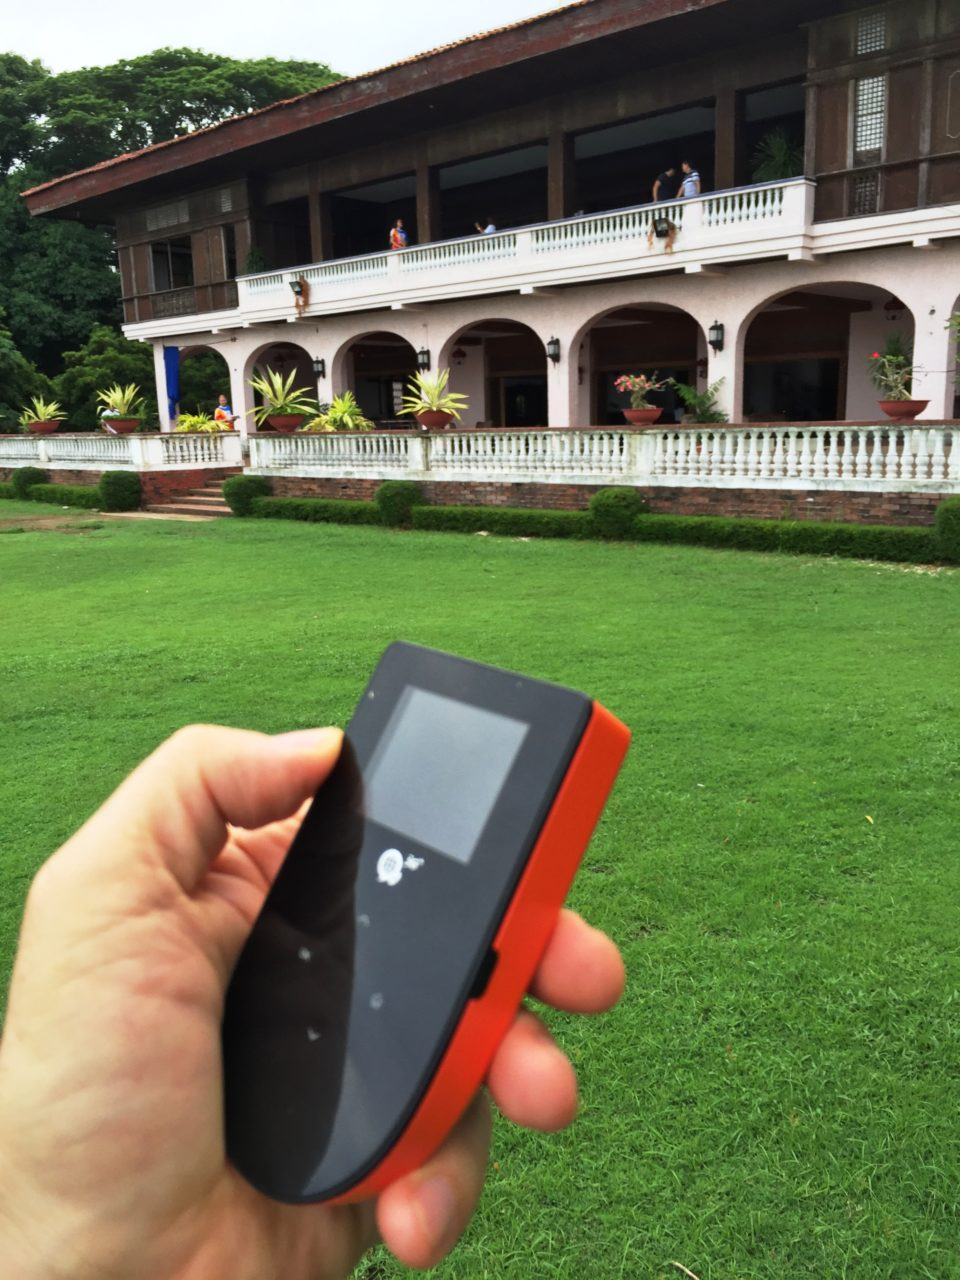 WiFi Anywhere : Skyroam Global Hotspot providing internet access at Ferdinand Marcos' summer house in the Philippines